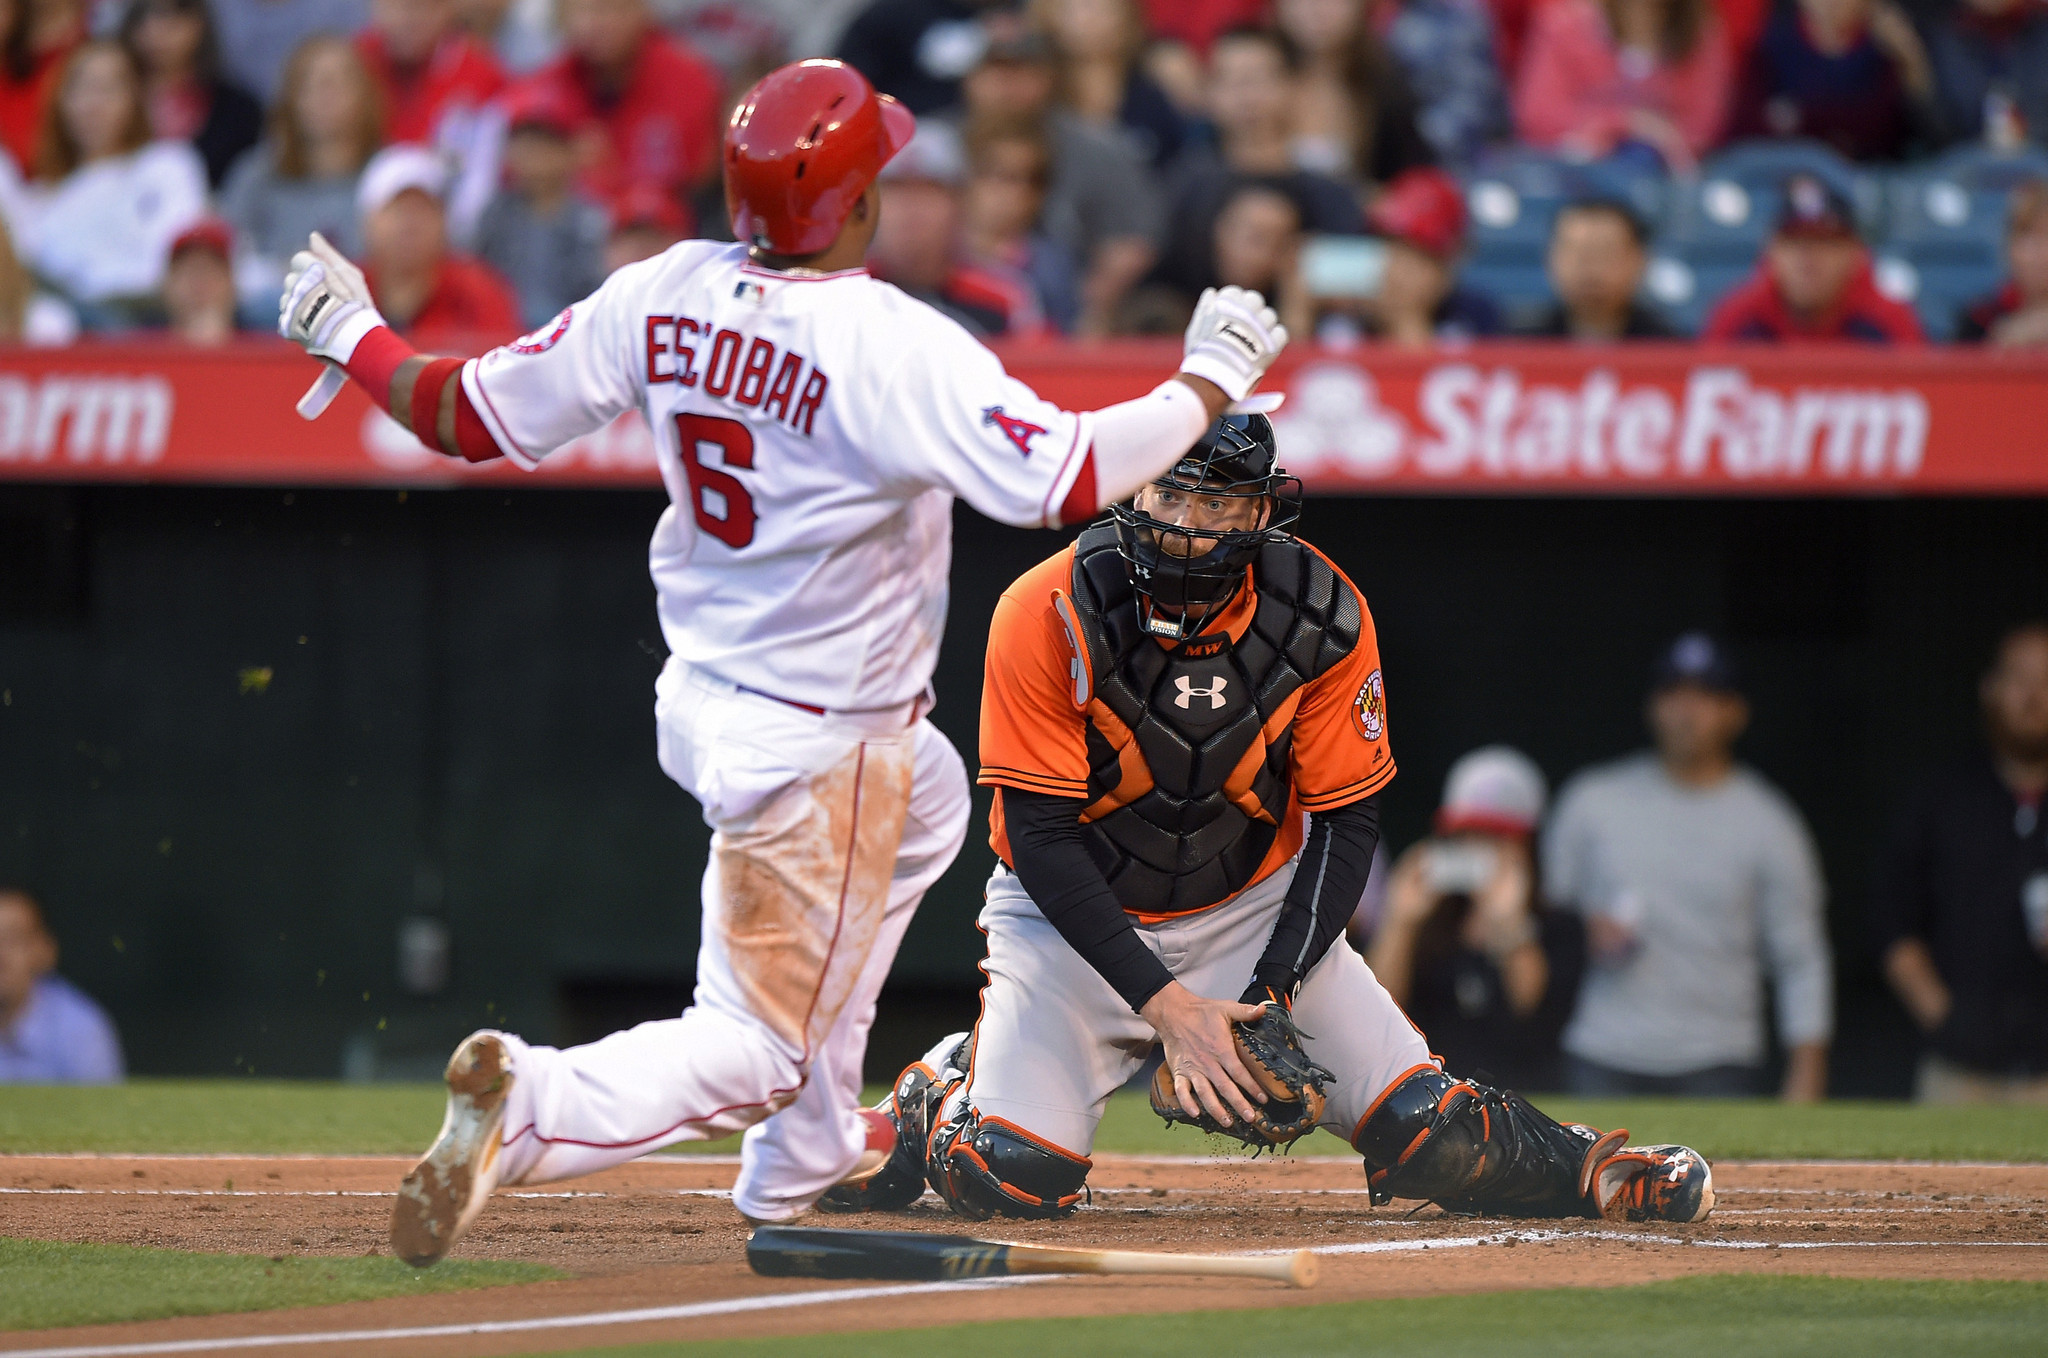 Bal-orioles-on-deck-what-to-watch-sunday-at-angels-20160521